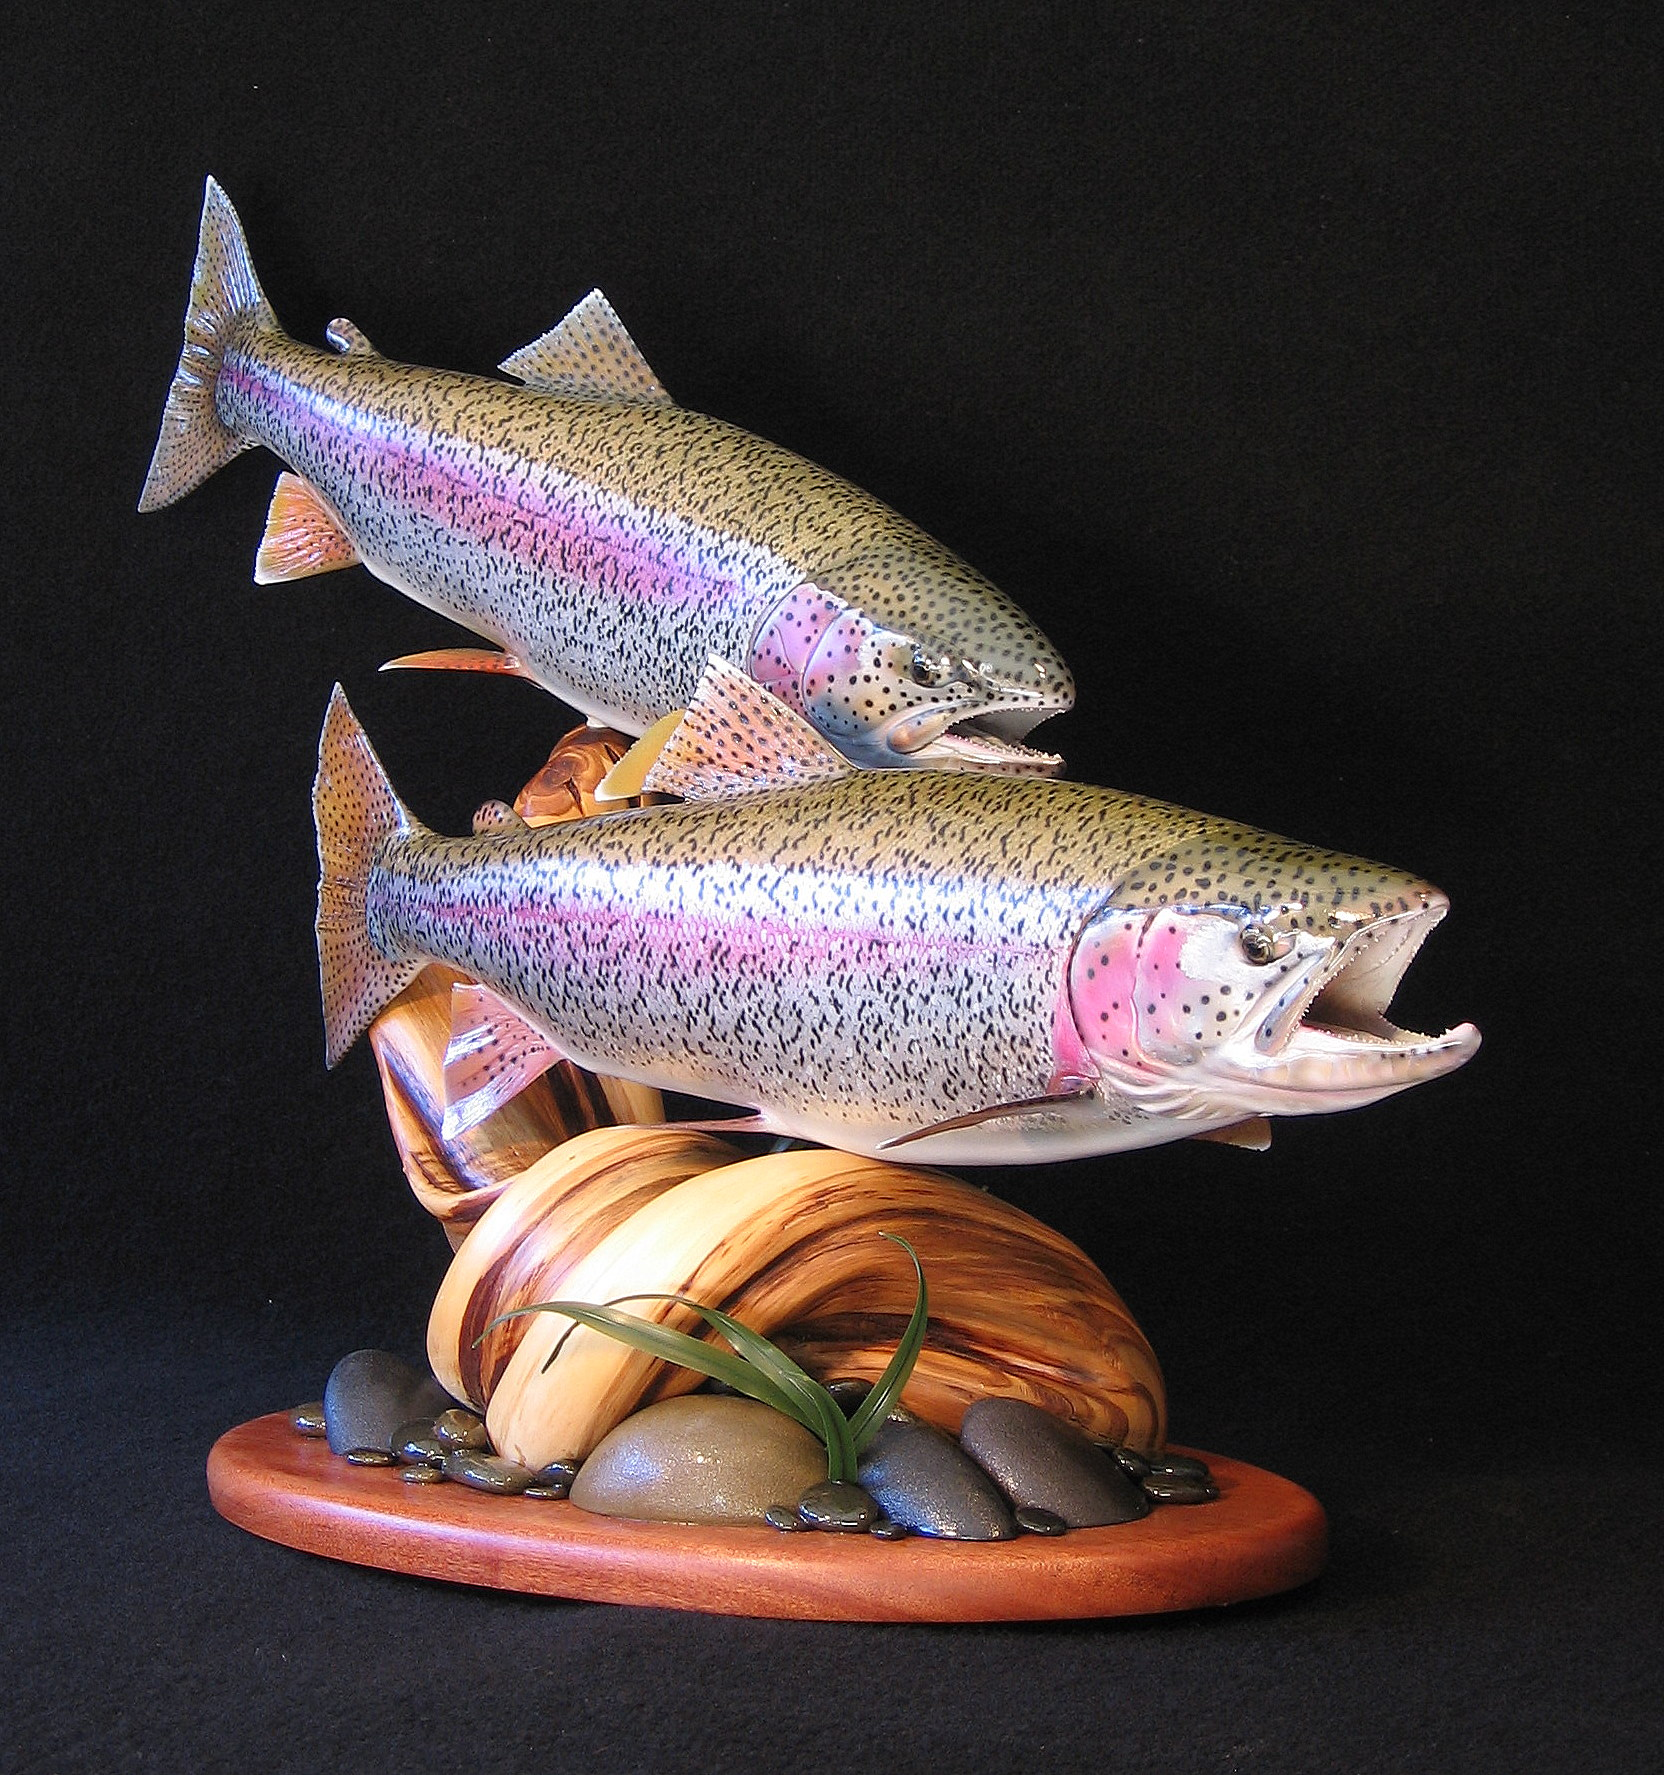 Alaskan double rainbow trout pedestal fish art replica sculpture Luke Filmer